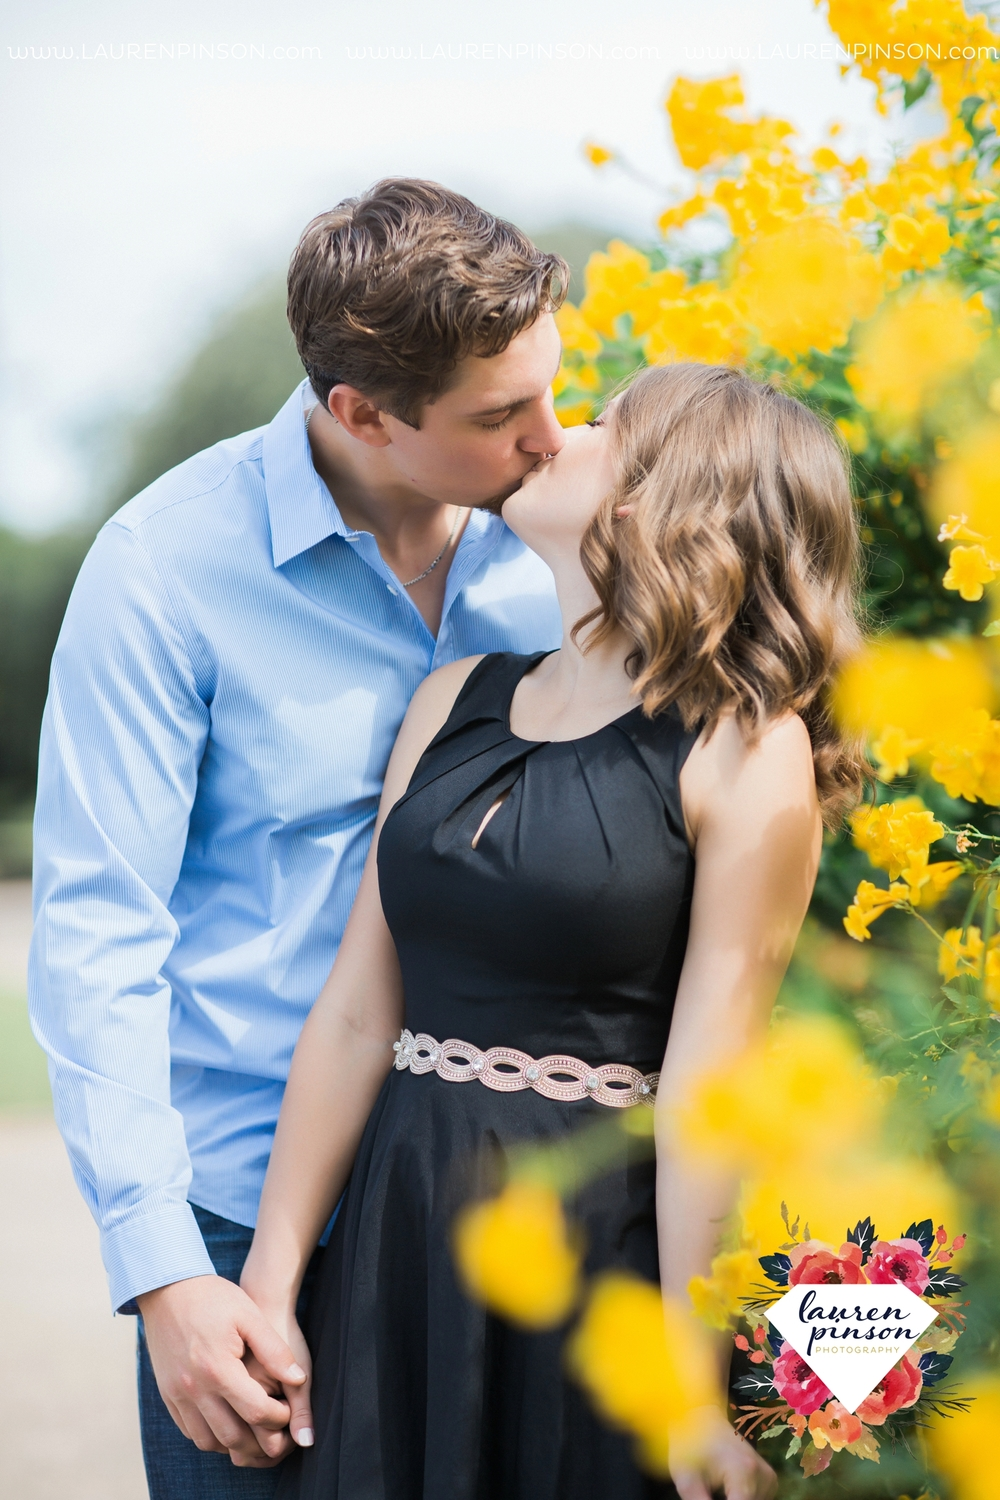 austin-texas-engagement-session-photography-by-wichita-falls-wedding-photgraphy-lauren-pinson_1407.jpg